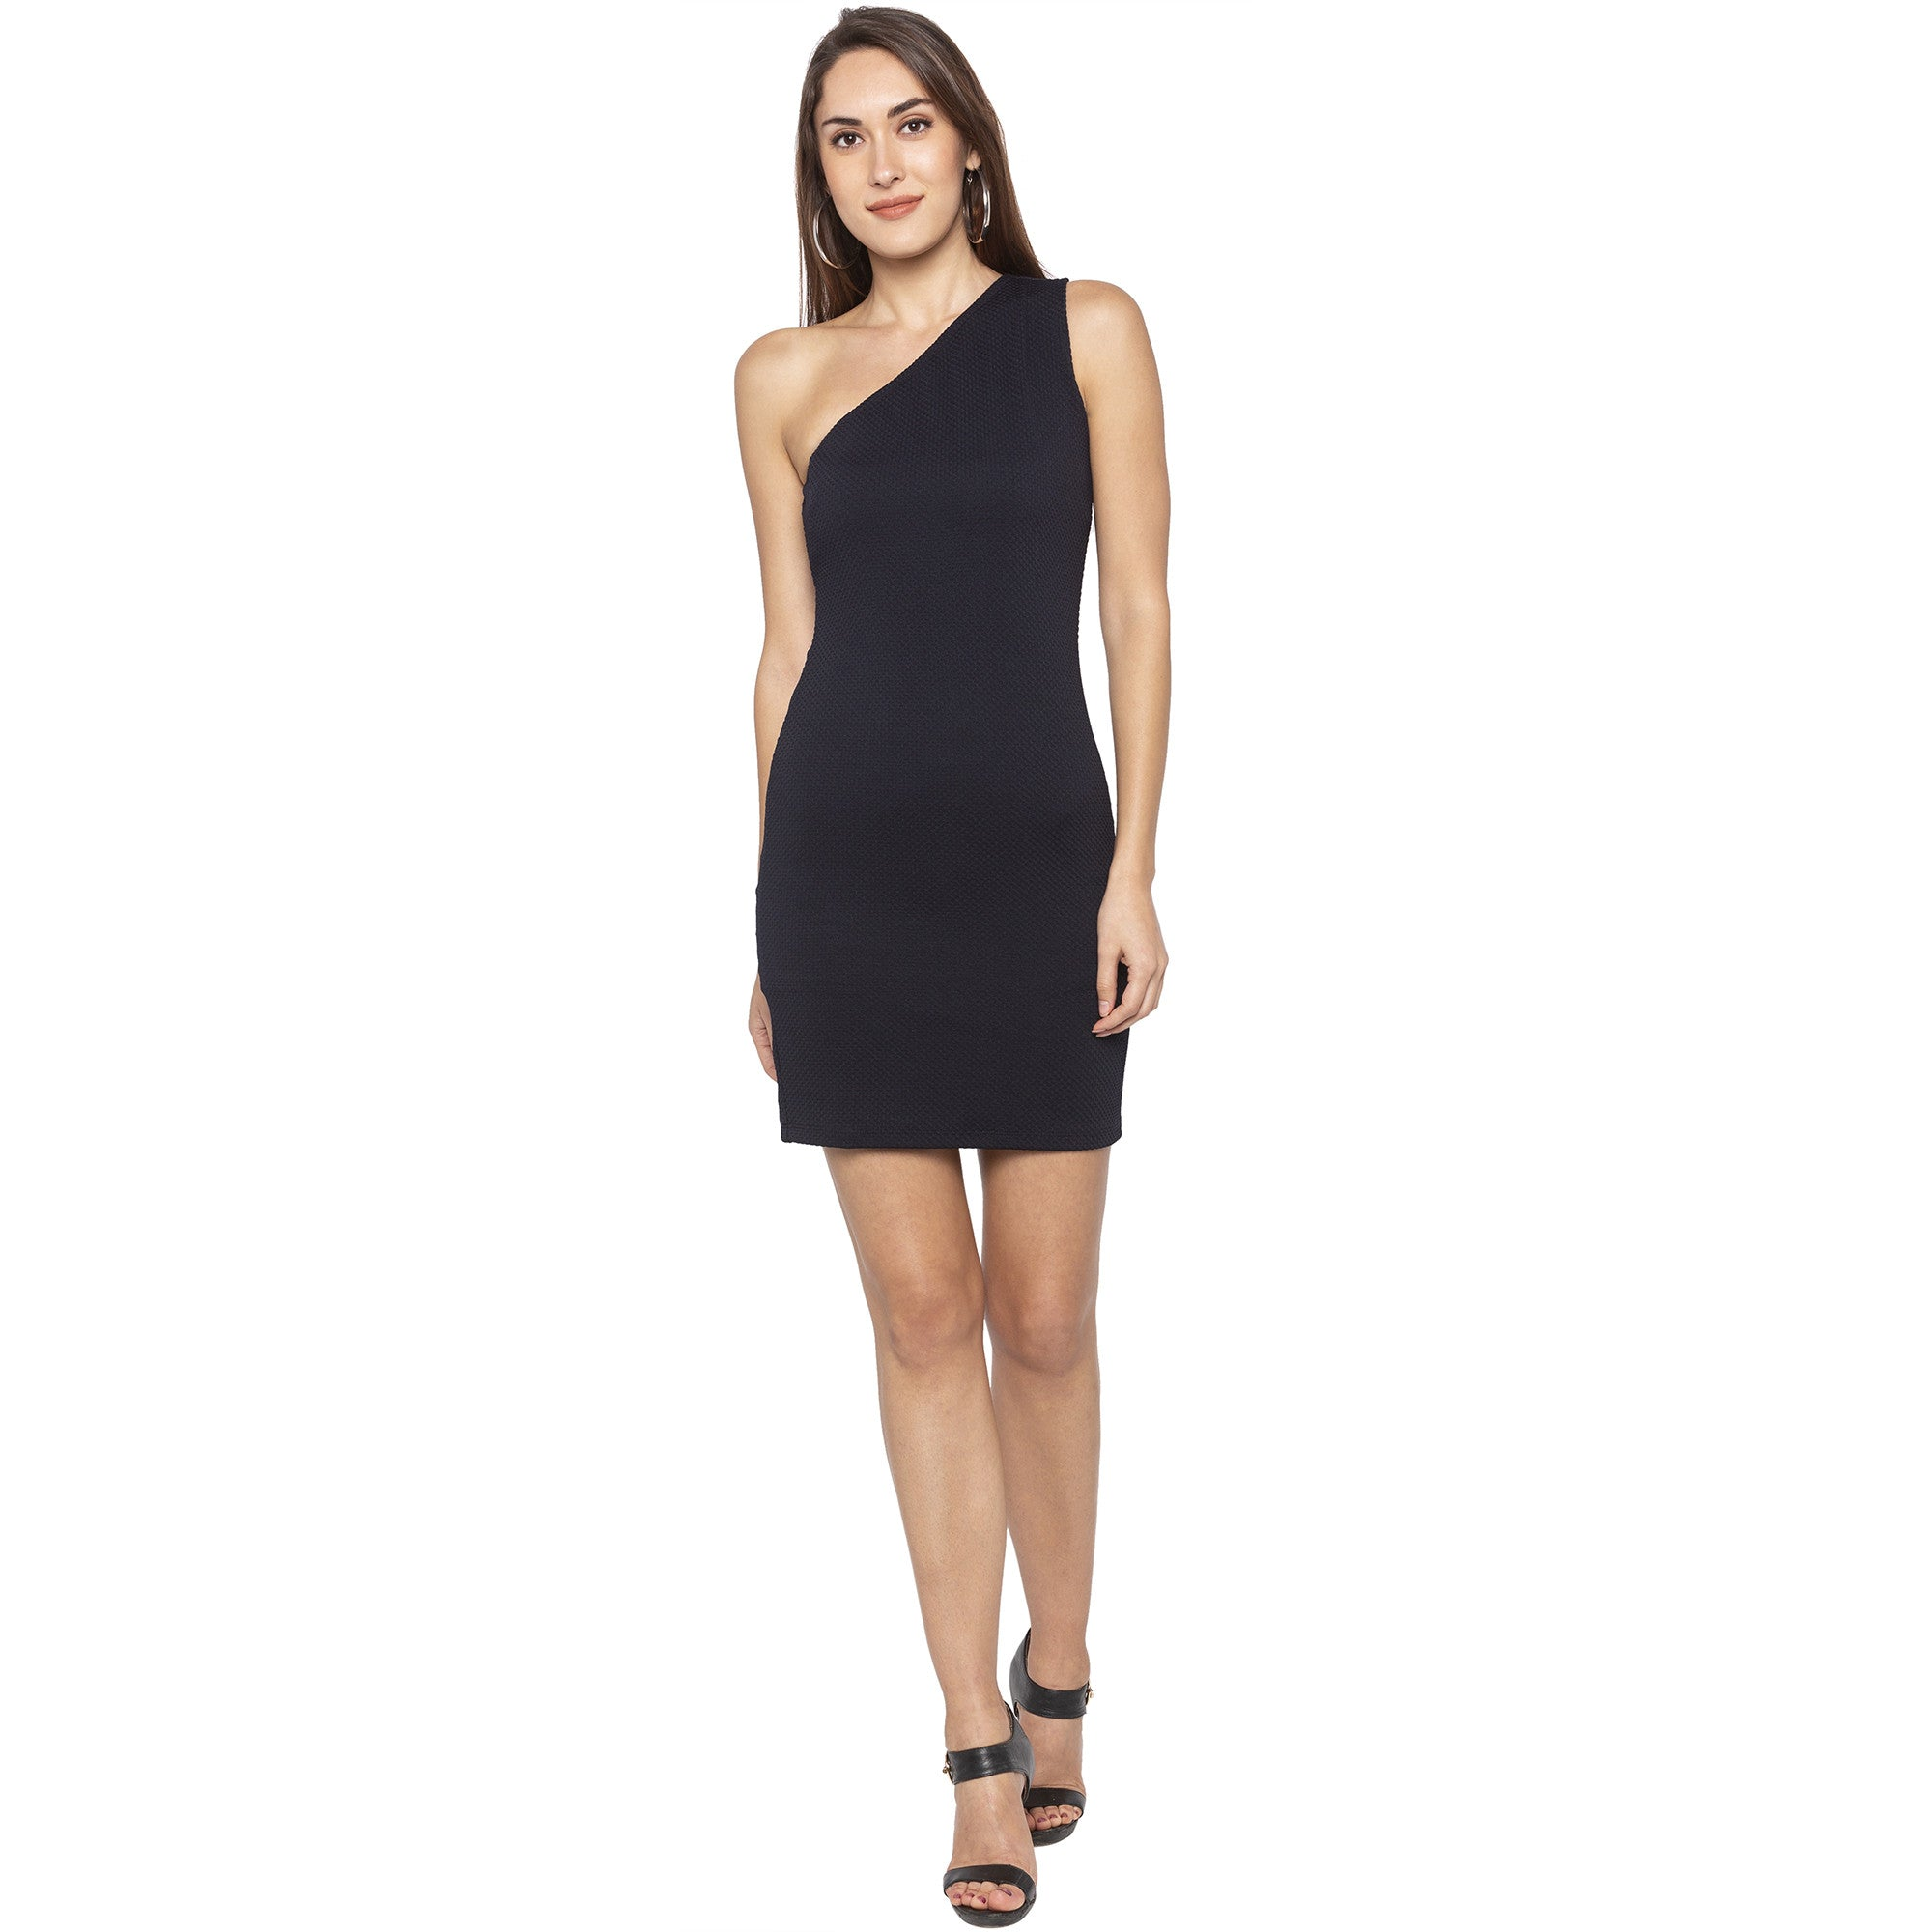 Party Navy Blue Color Solid Bodycon Dress-1